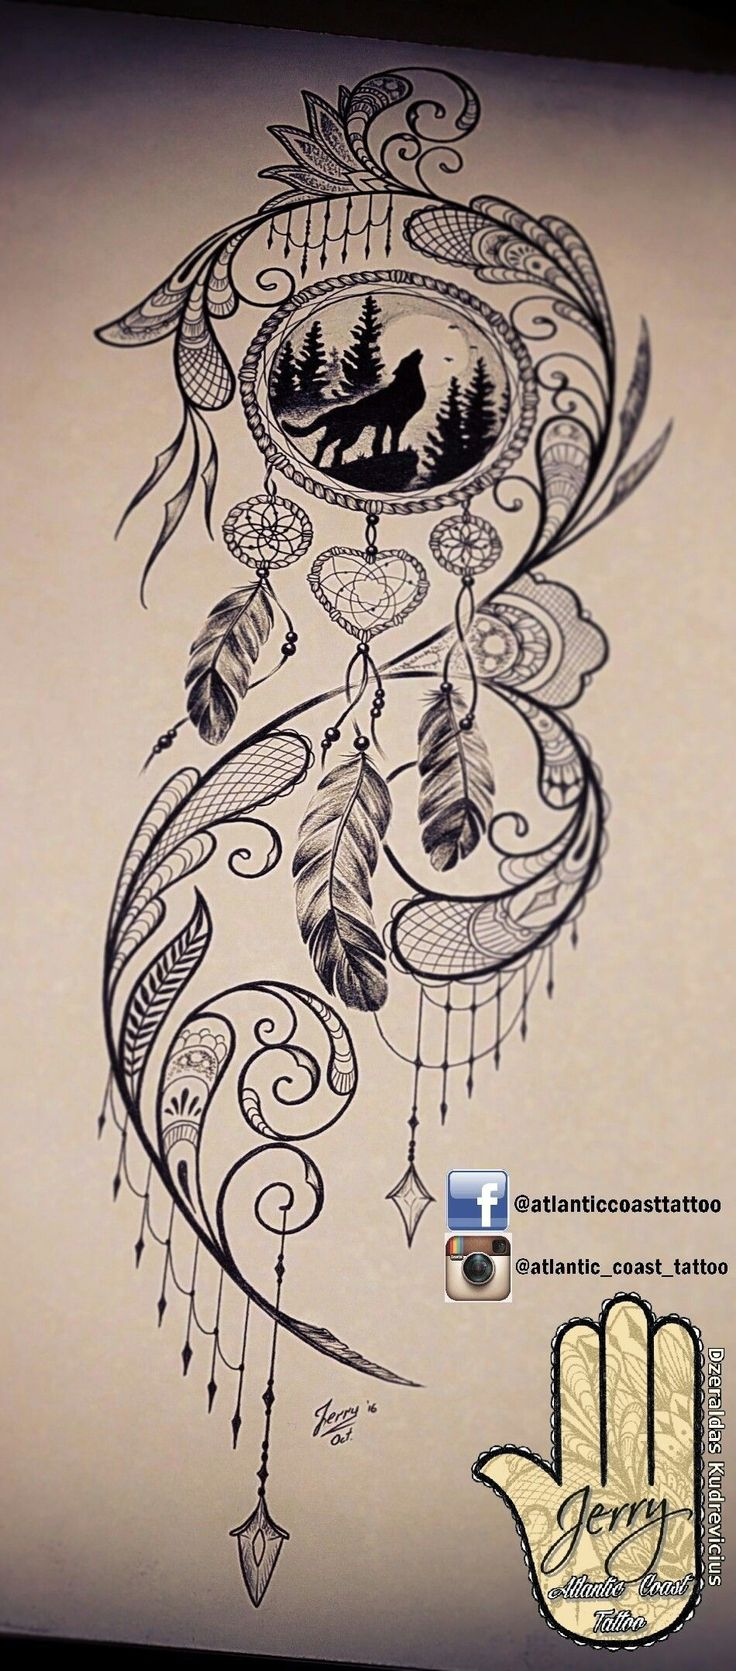 Best 25 symbolic family tattoos ideas on pinterest heartbeat best 25 symbolic family tattoos ideas on pinterest heartbeat tattoos heartbeat tattoo design and family tattoos for girls biocorpaavc